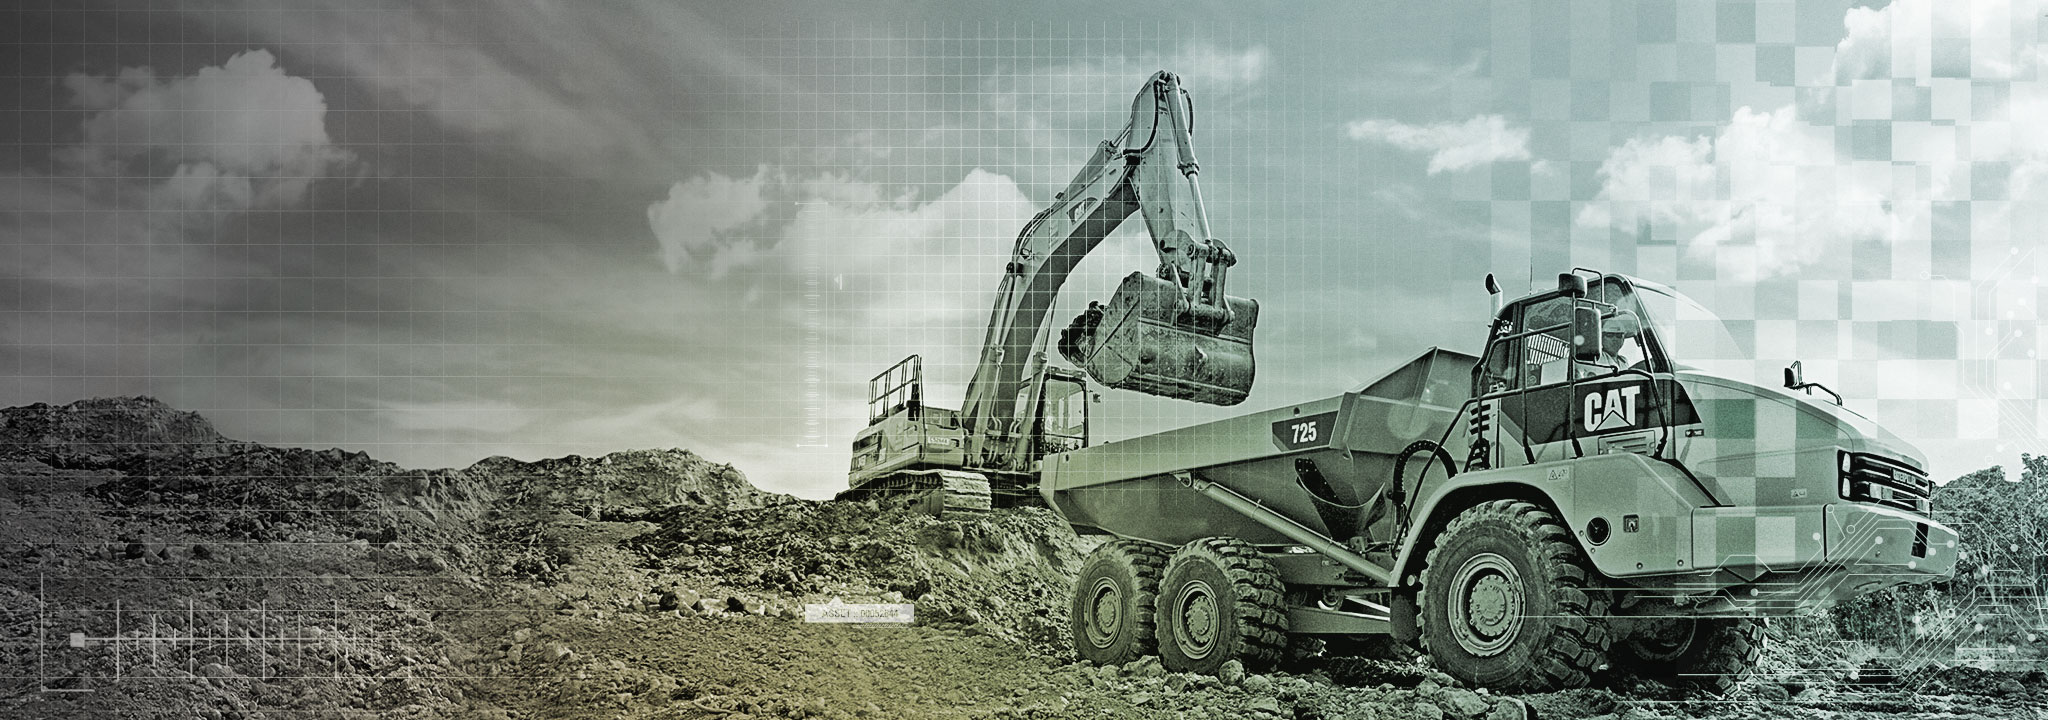 Cavpower | Official Caterpillar dealer for South Australia and